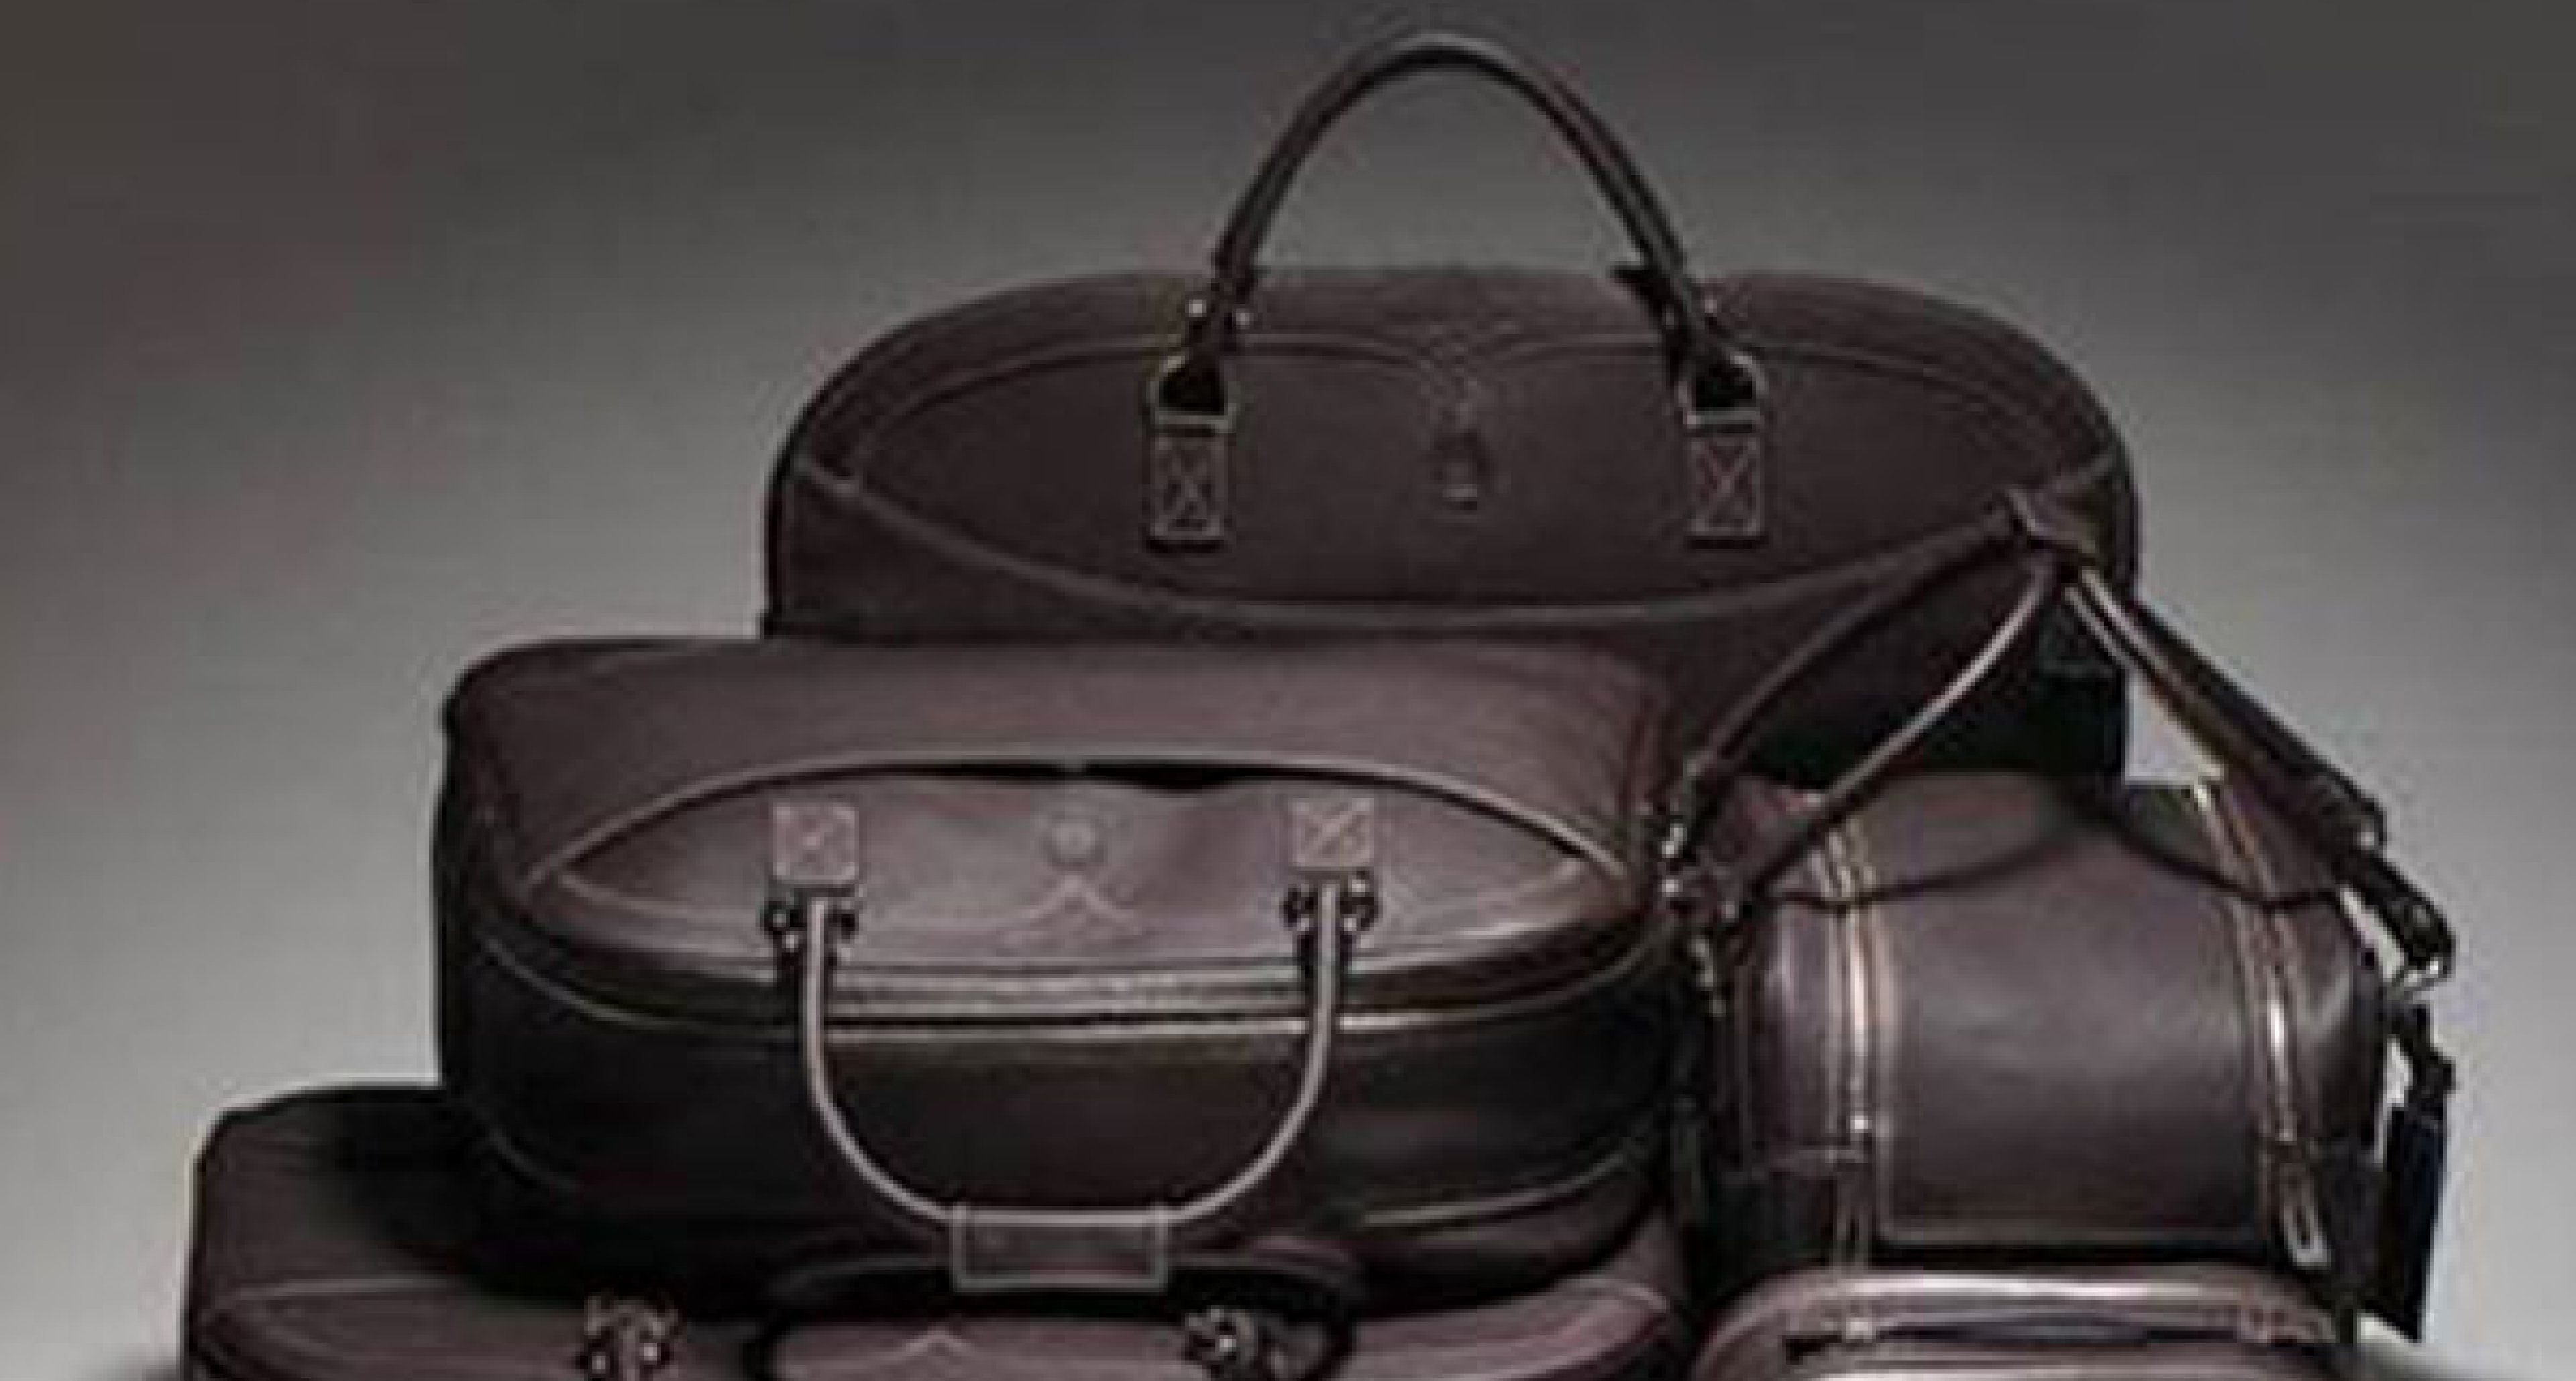 Salvatore Ferragamo luggage set for the Maserati GranTurismo